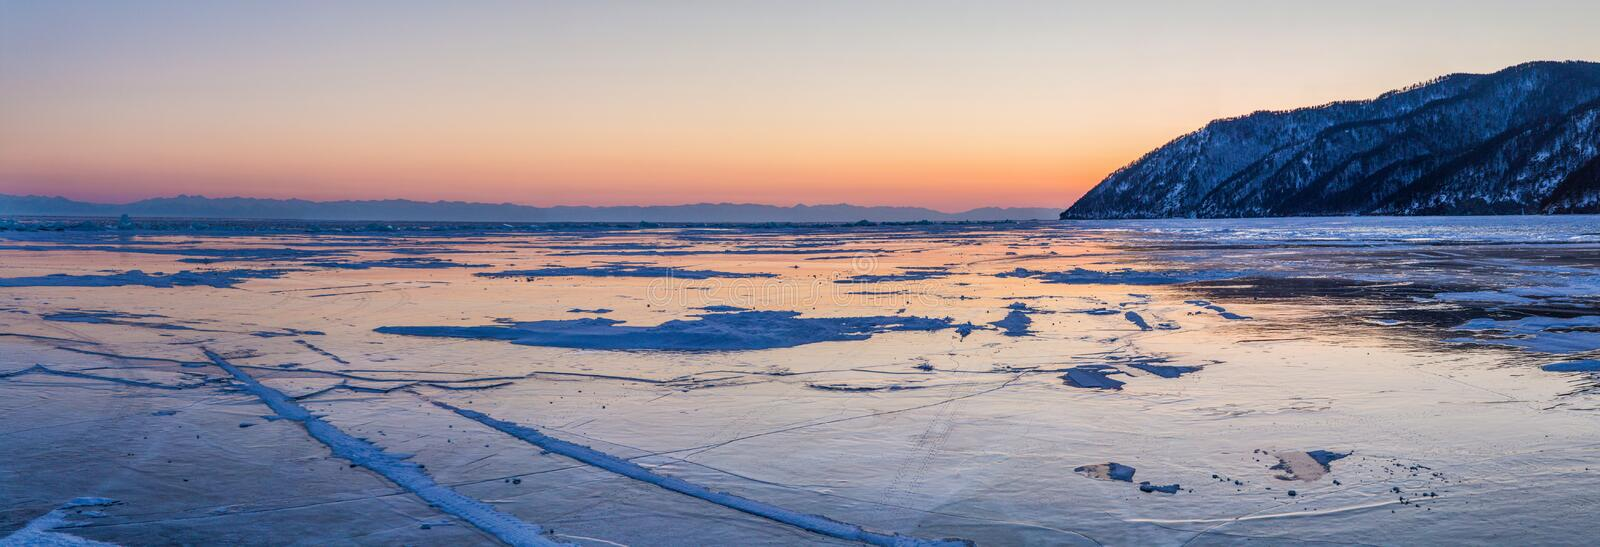 Beautiful scenic landscape with shore and frozen lake Baikal. At sunset royalty free stock photo